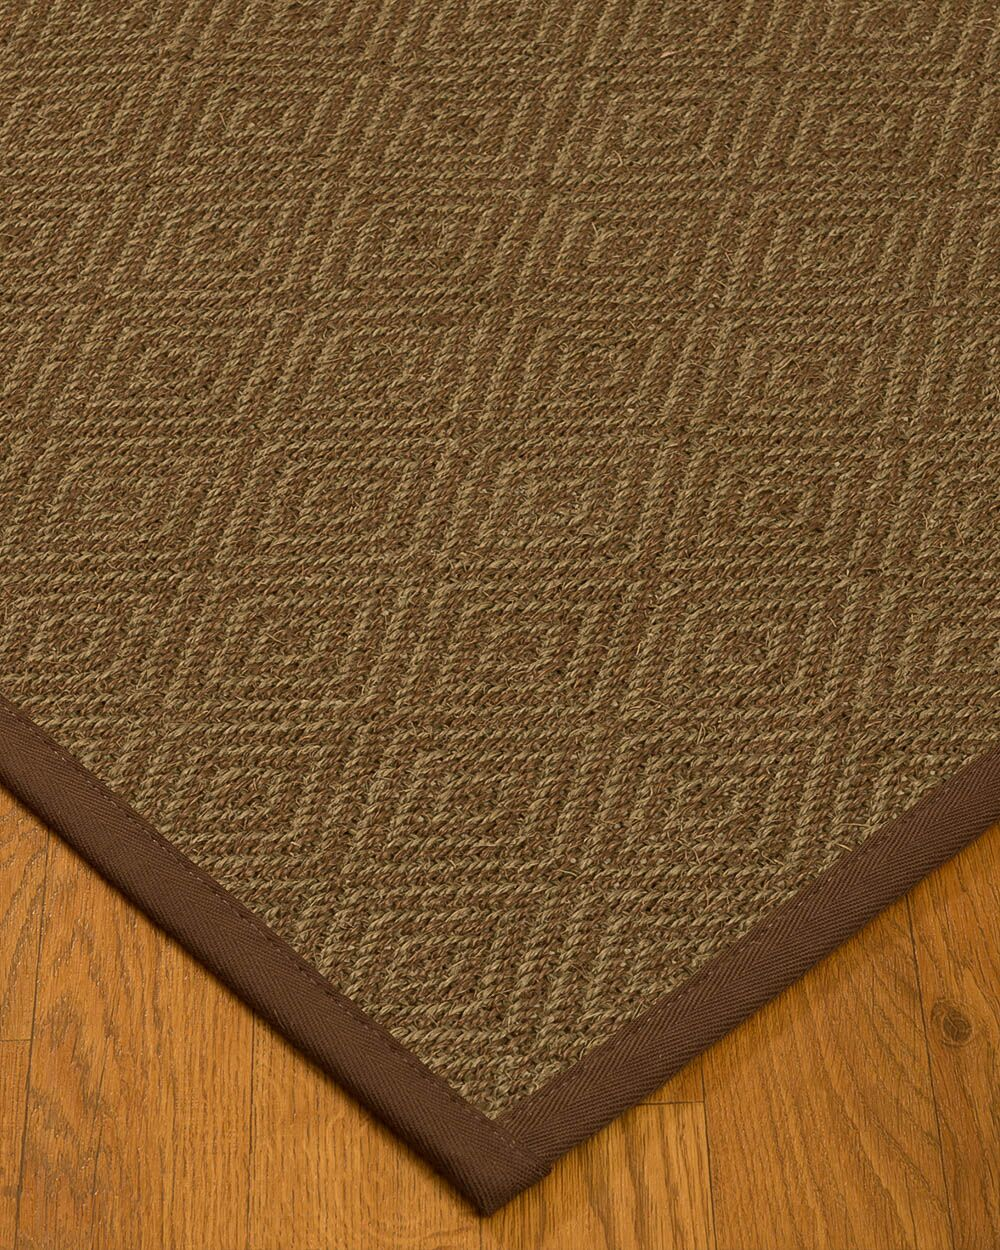 Magnuson Border Hand-Woven Brown Area Rug Rug Pad Included: No, Rug Size: Runner 2'6